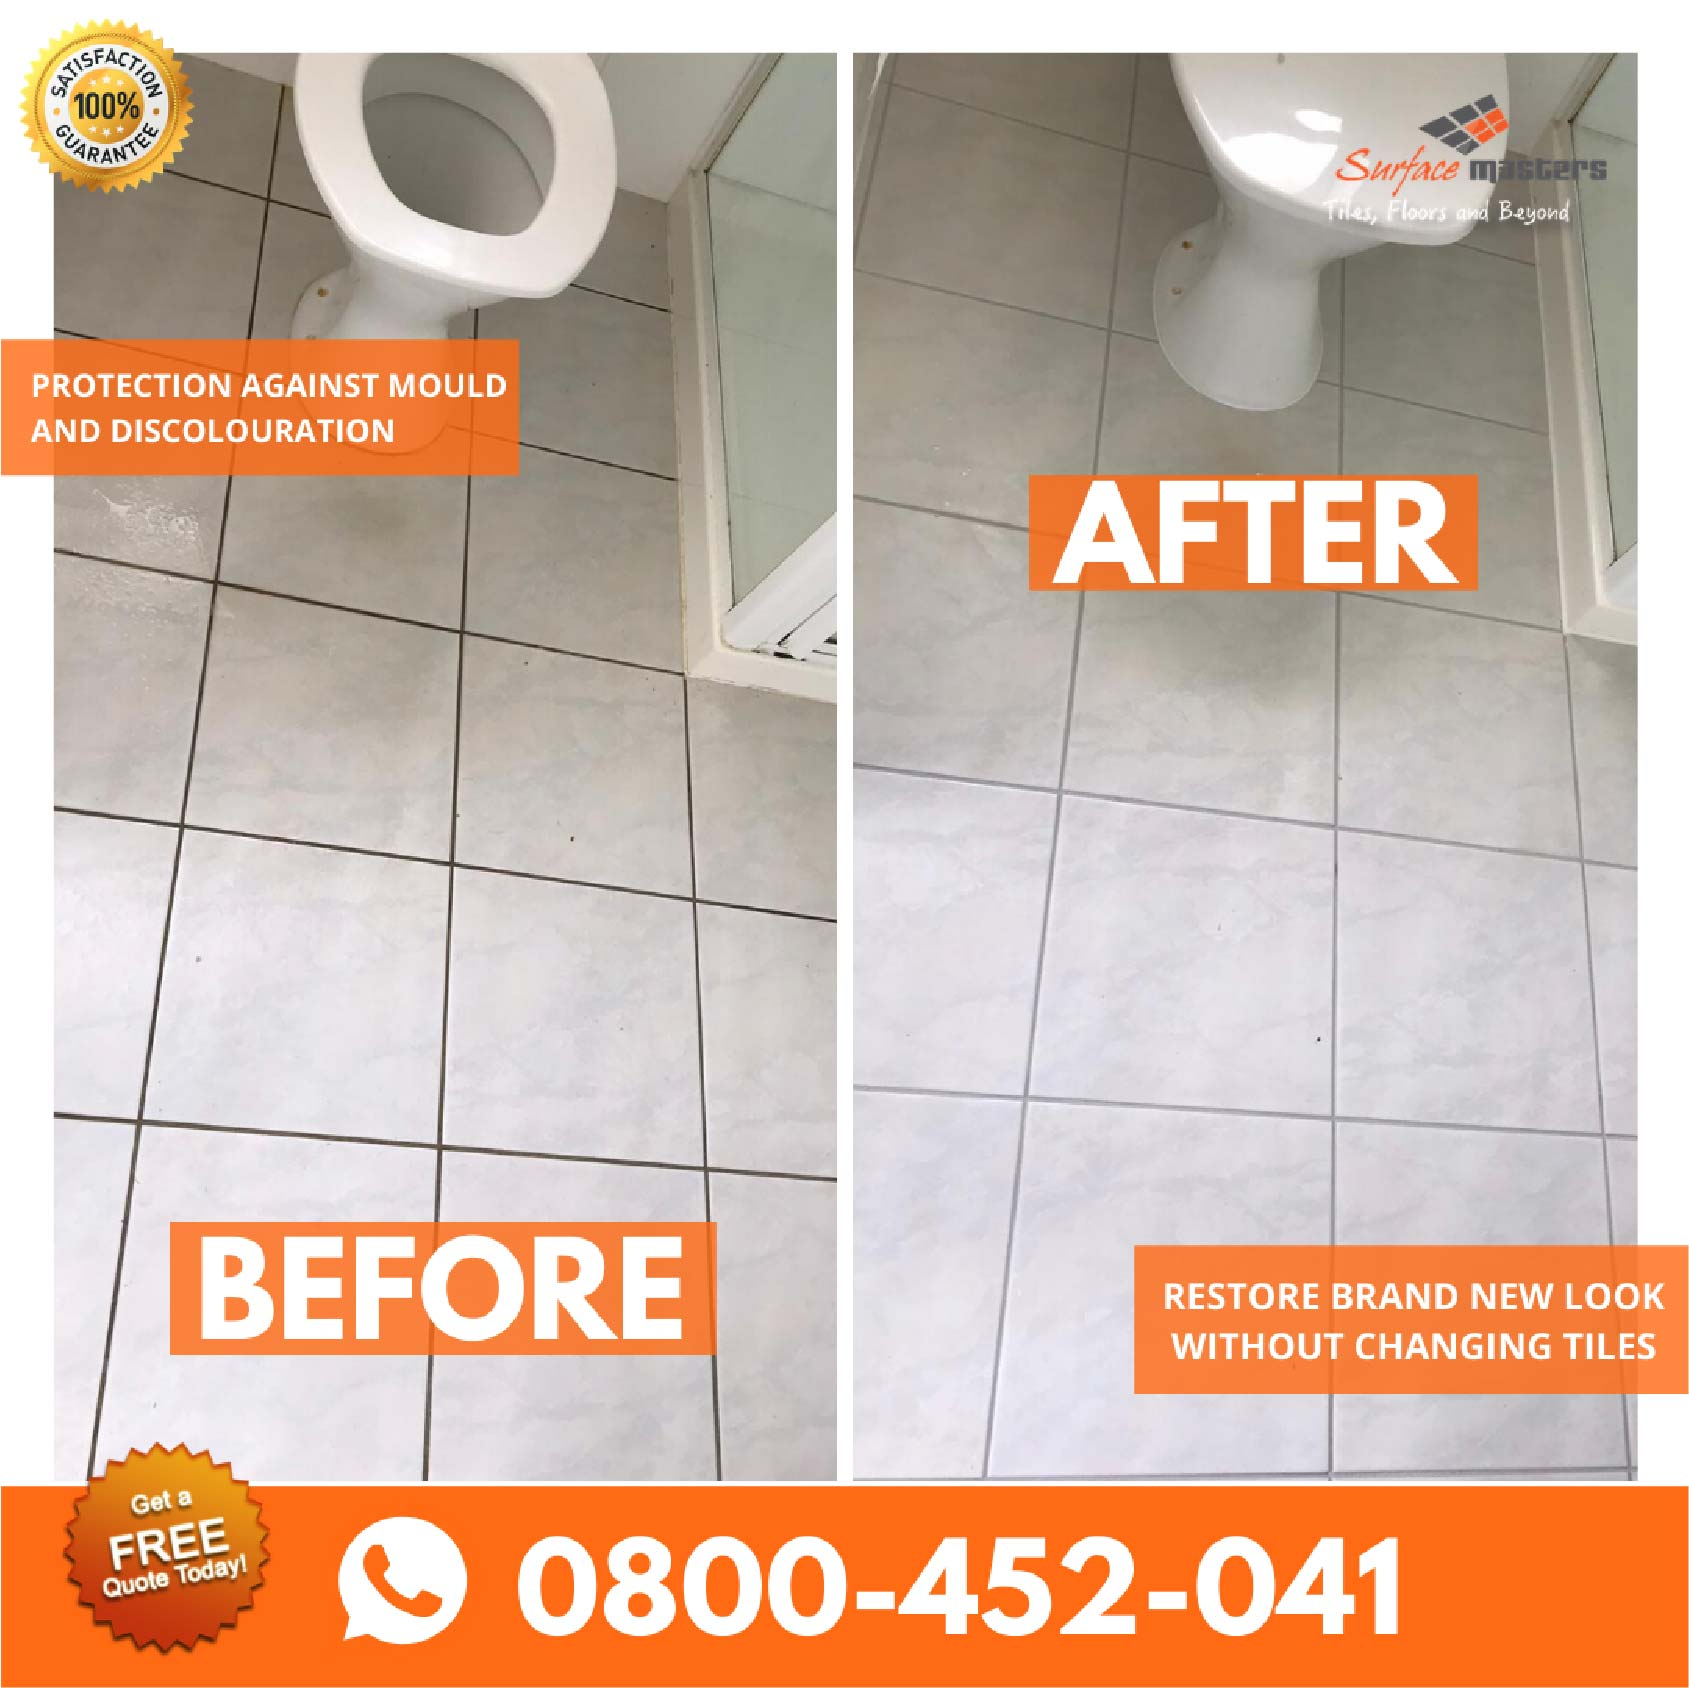 Transformation of Tiled floor after tile and grout cleaning services